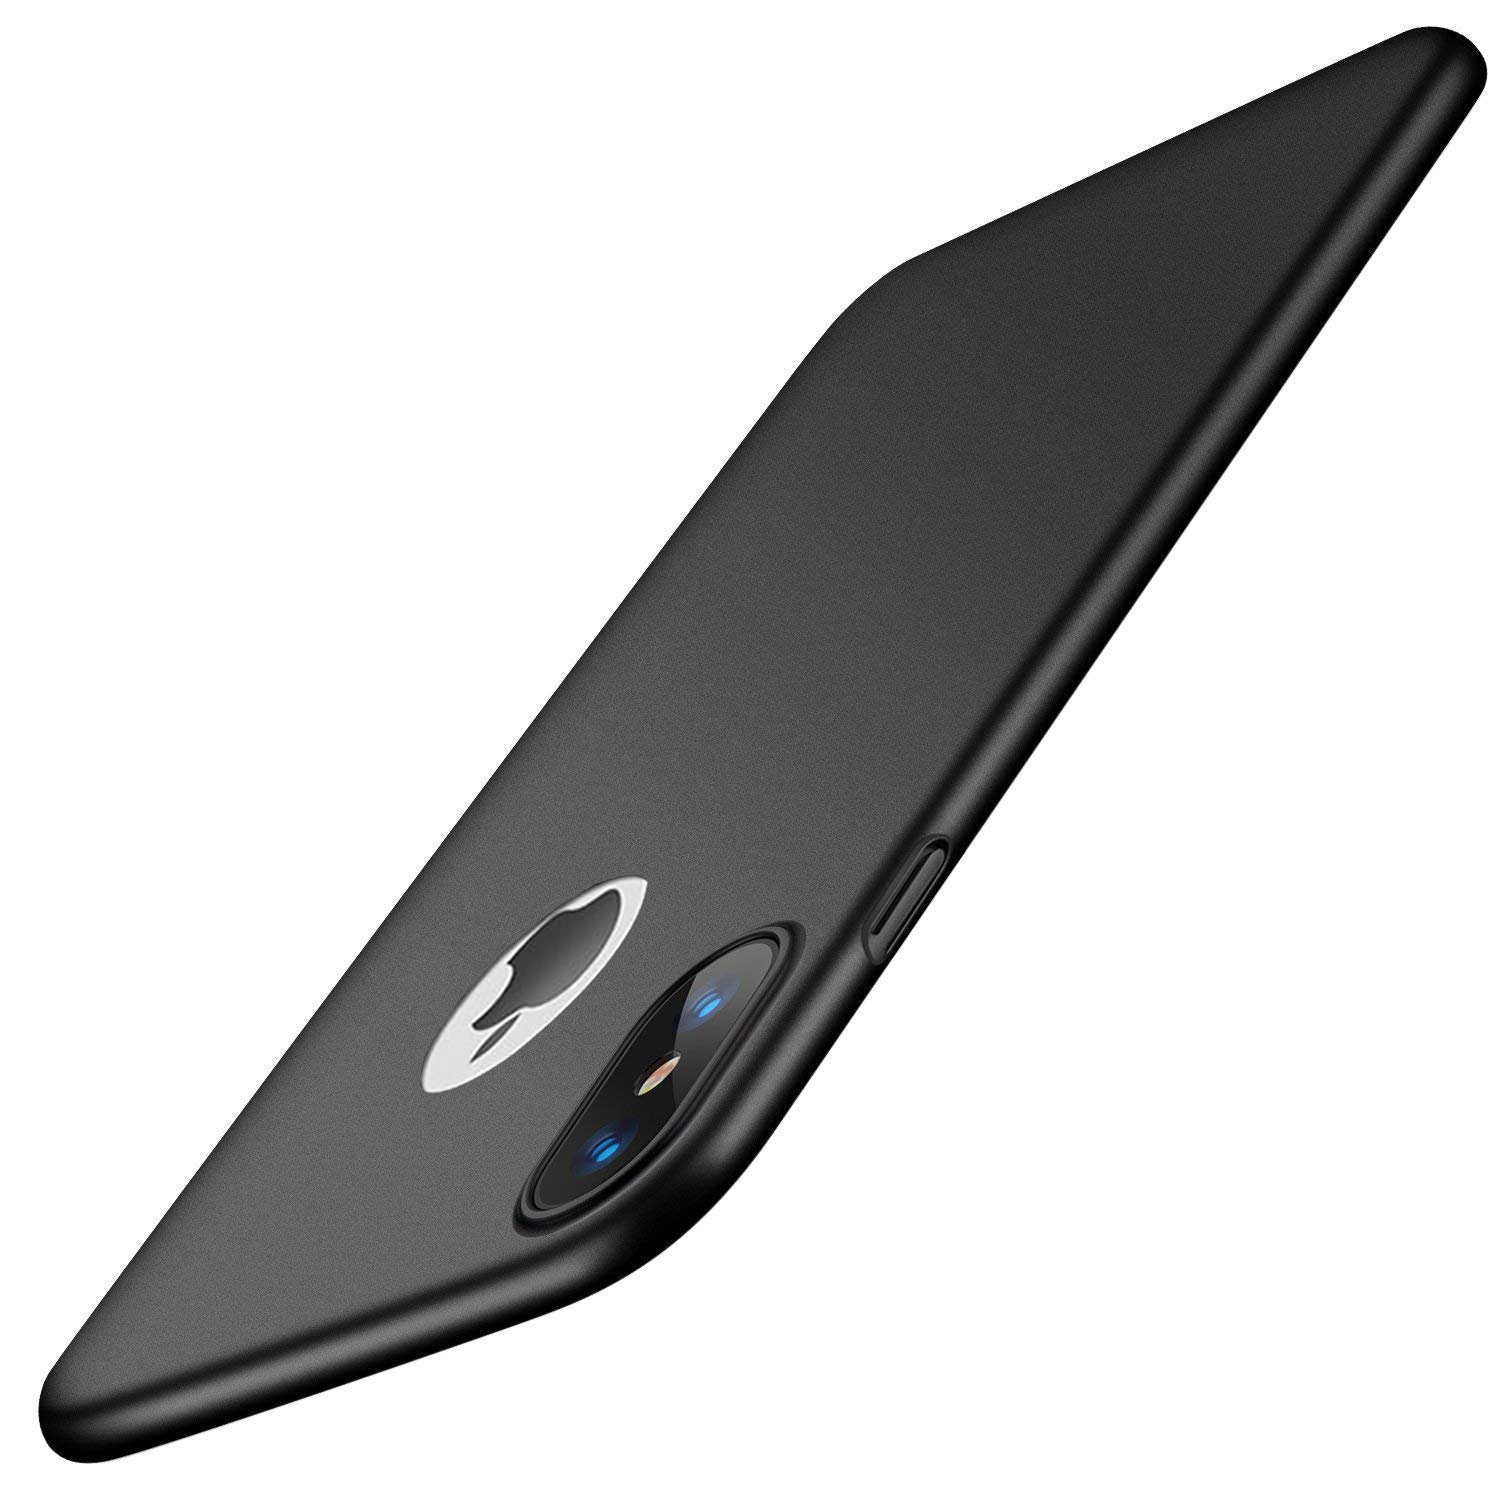 Shockproof-Hard-Back-Ultra-Thin-Slim-New-Bumper-Case-Cover-For-Apple-iPhone-X-XR miniatuur 23